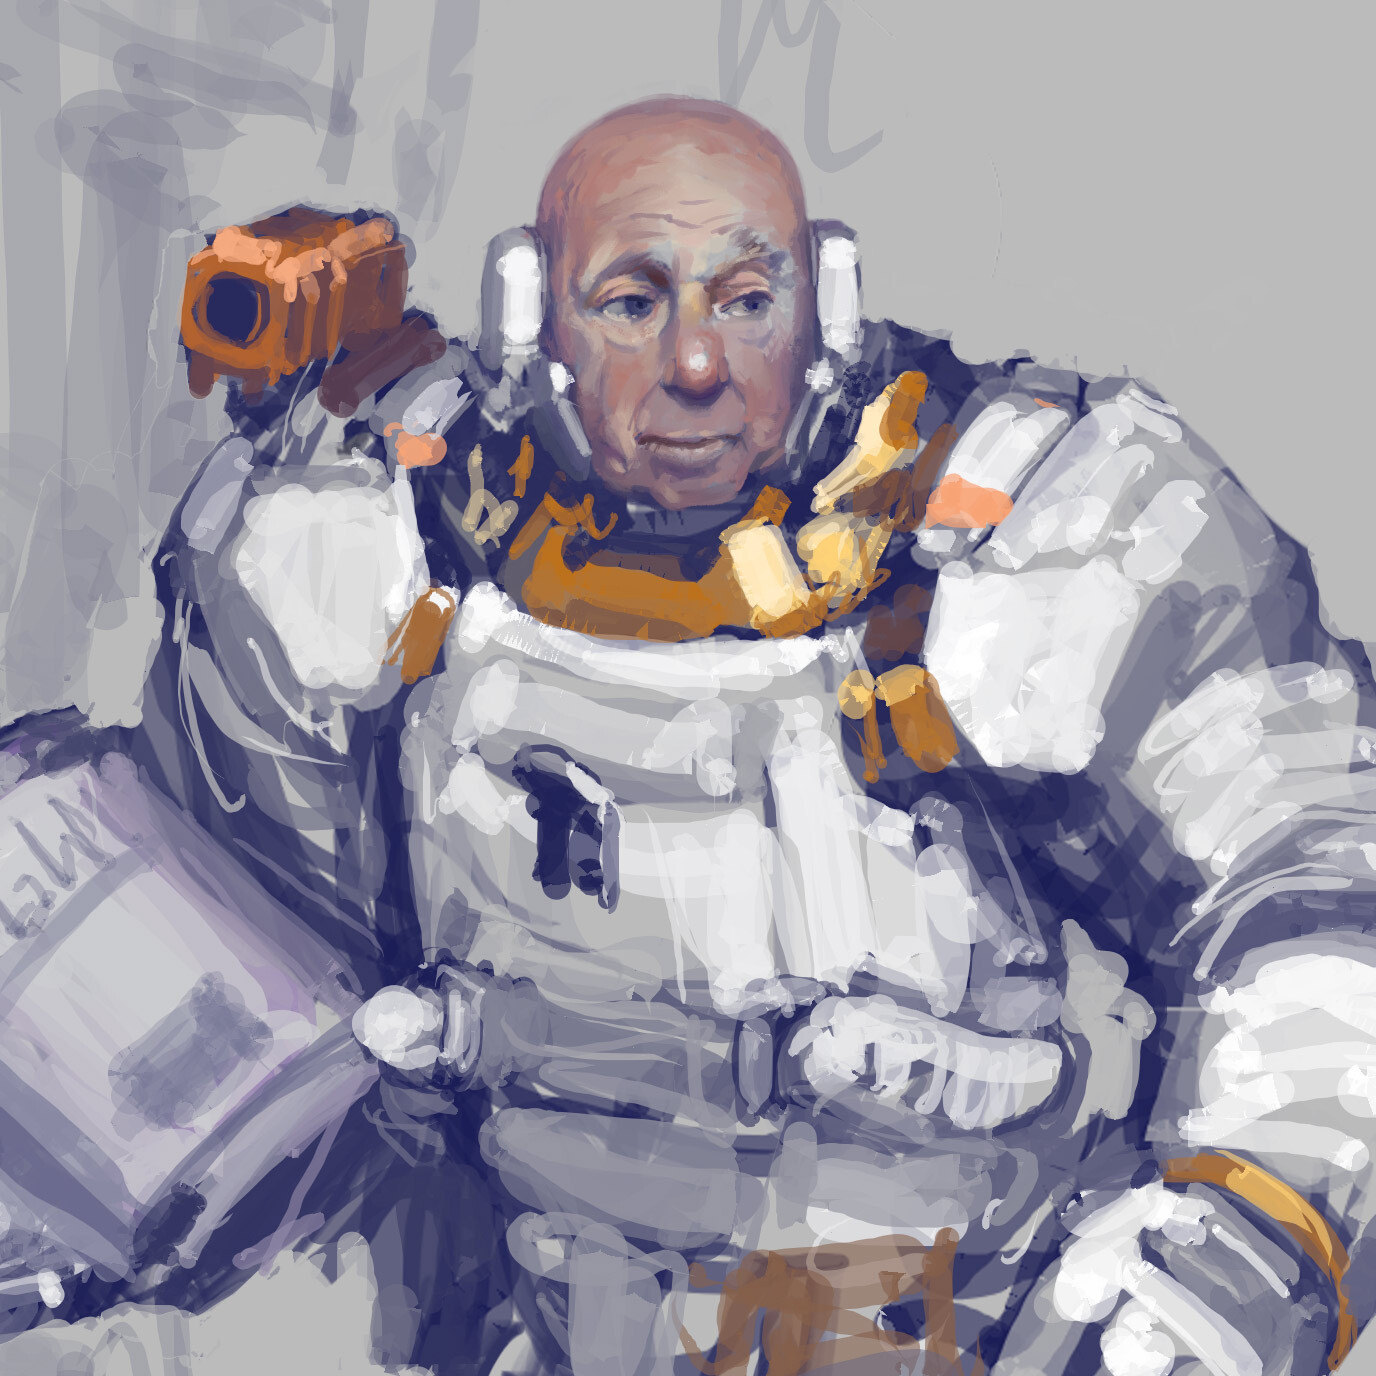 An old astronaut, vaguely inspired by the song 'Rocketship Cathedrals'.